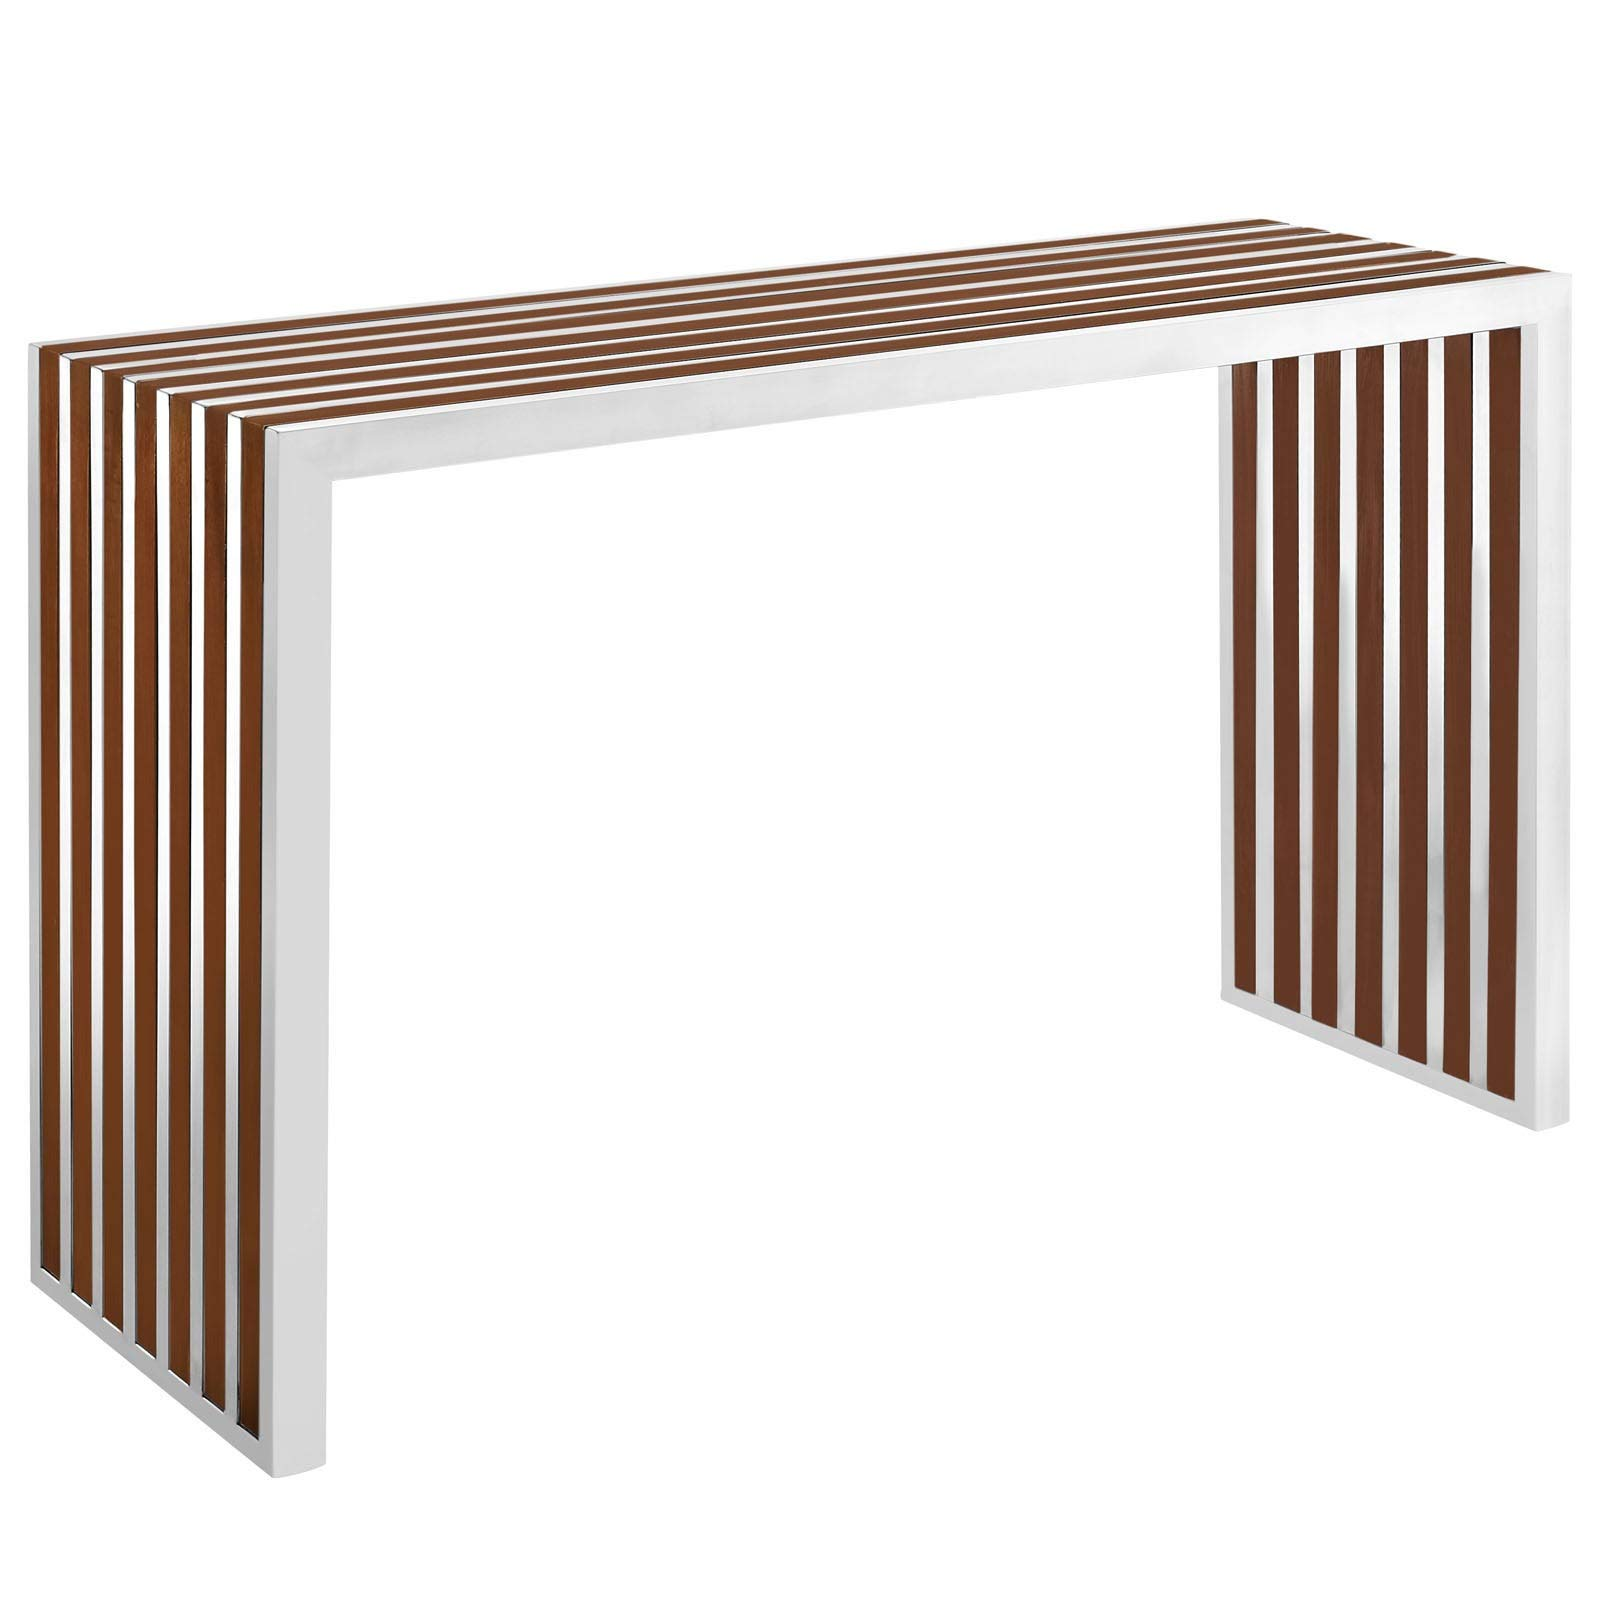 Gridiron Stainless Steel Wood Inlay Console Table Brown Modern Contemporary Round Walnut Finish by Unknown